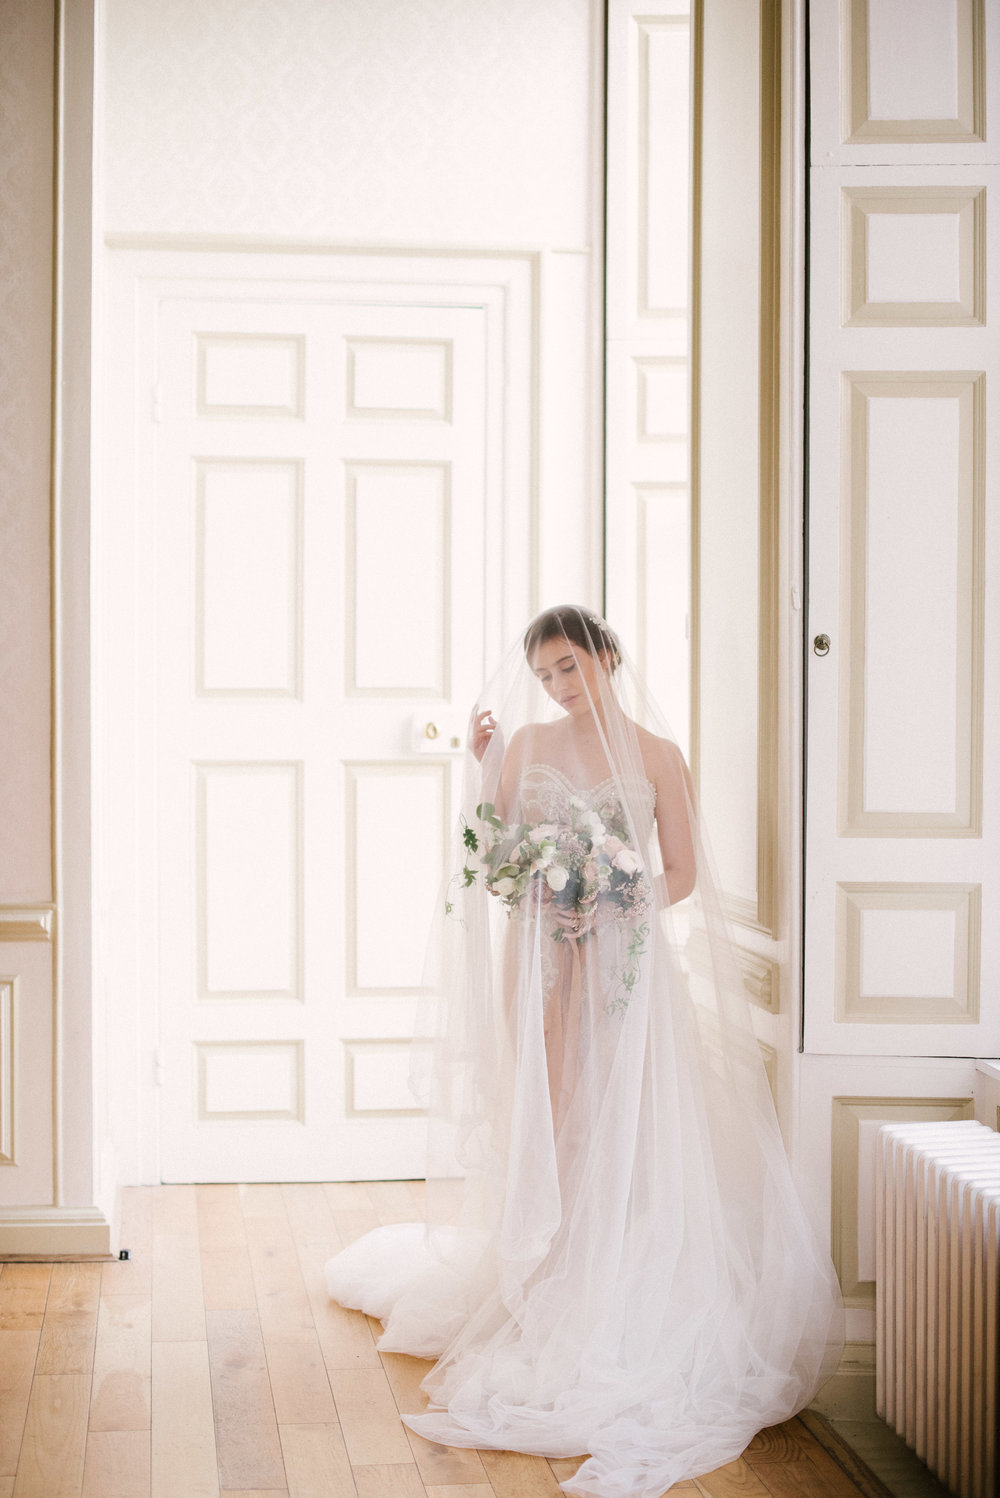 The Timeless Stylist-Elegant and Romantic Wedding Styling-Timeless Fine Art Wedding Venue